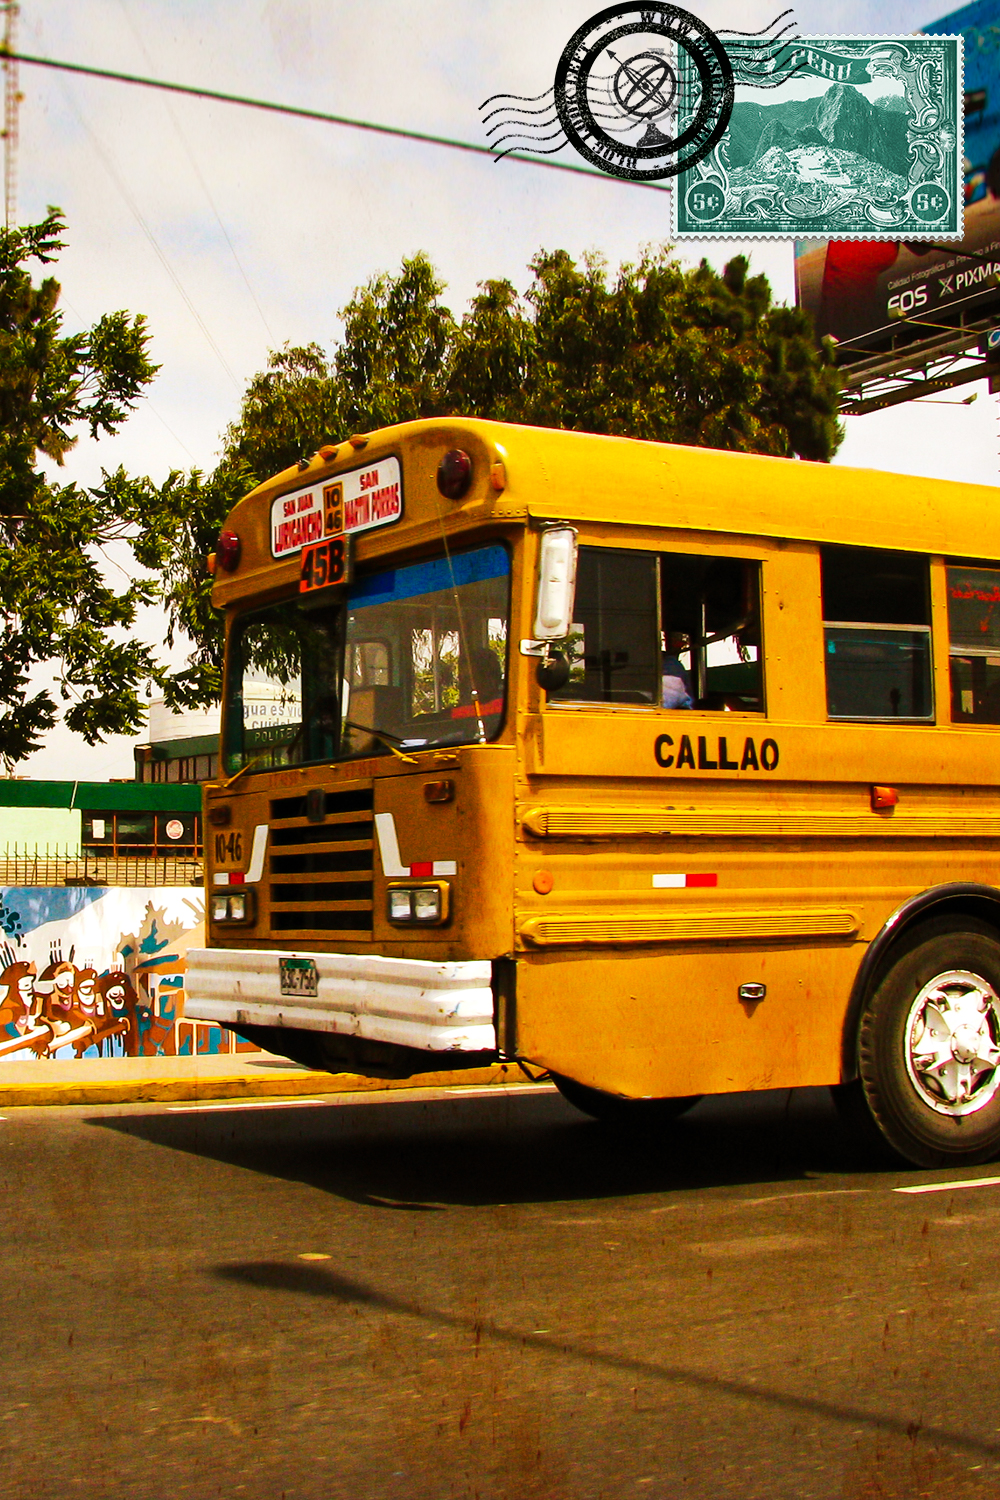 Another old bus in Lima